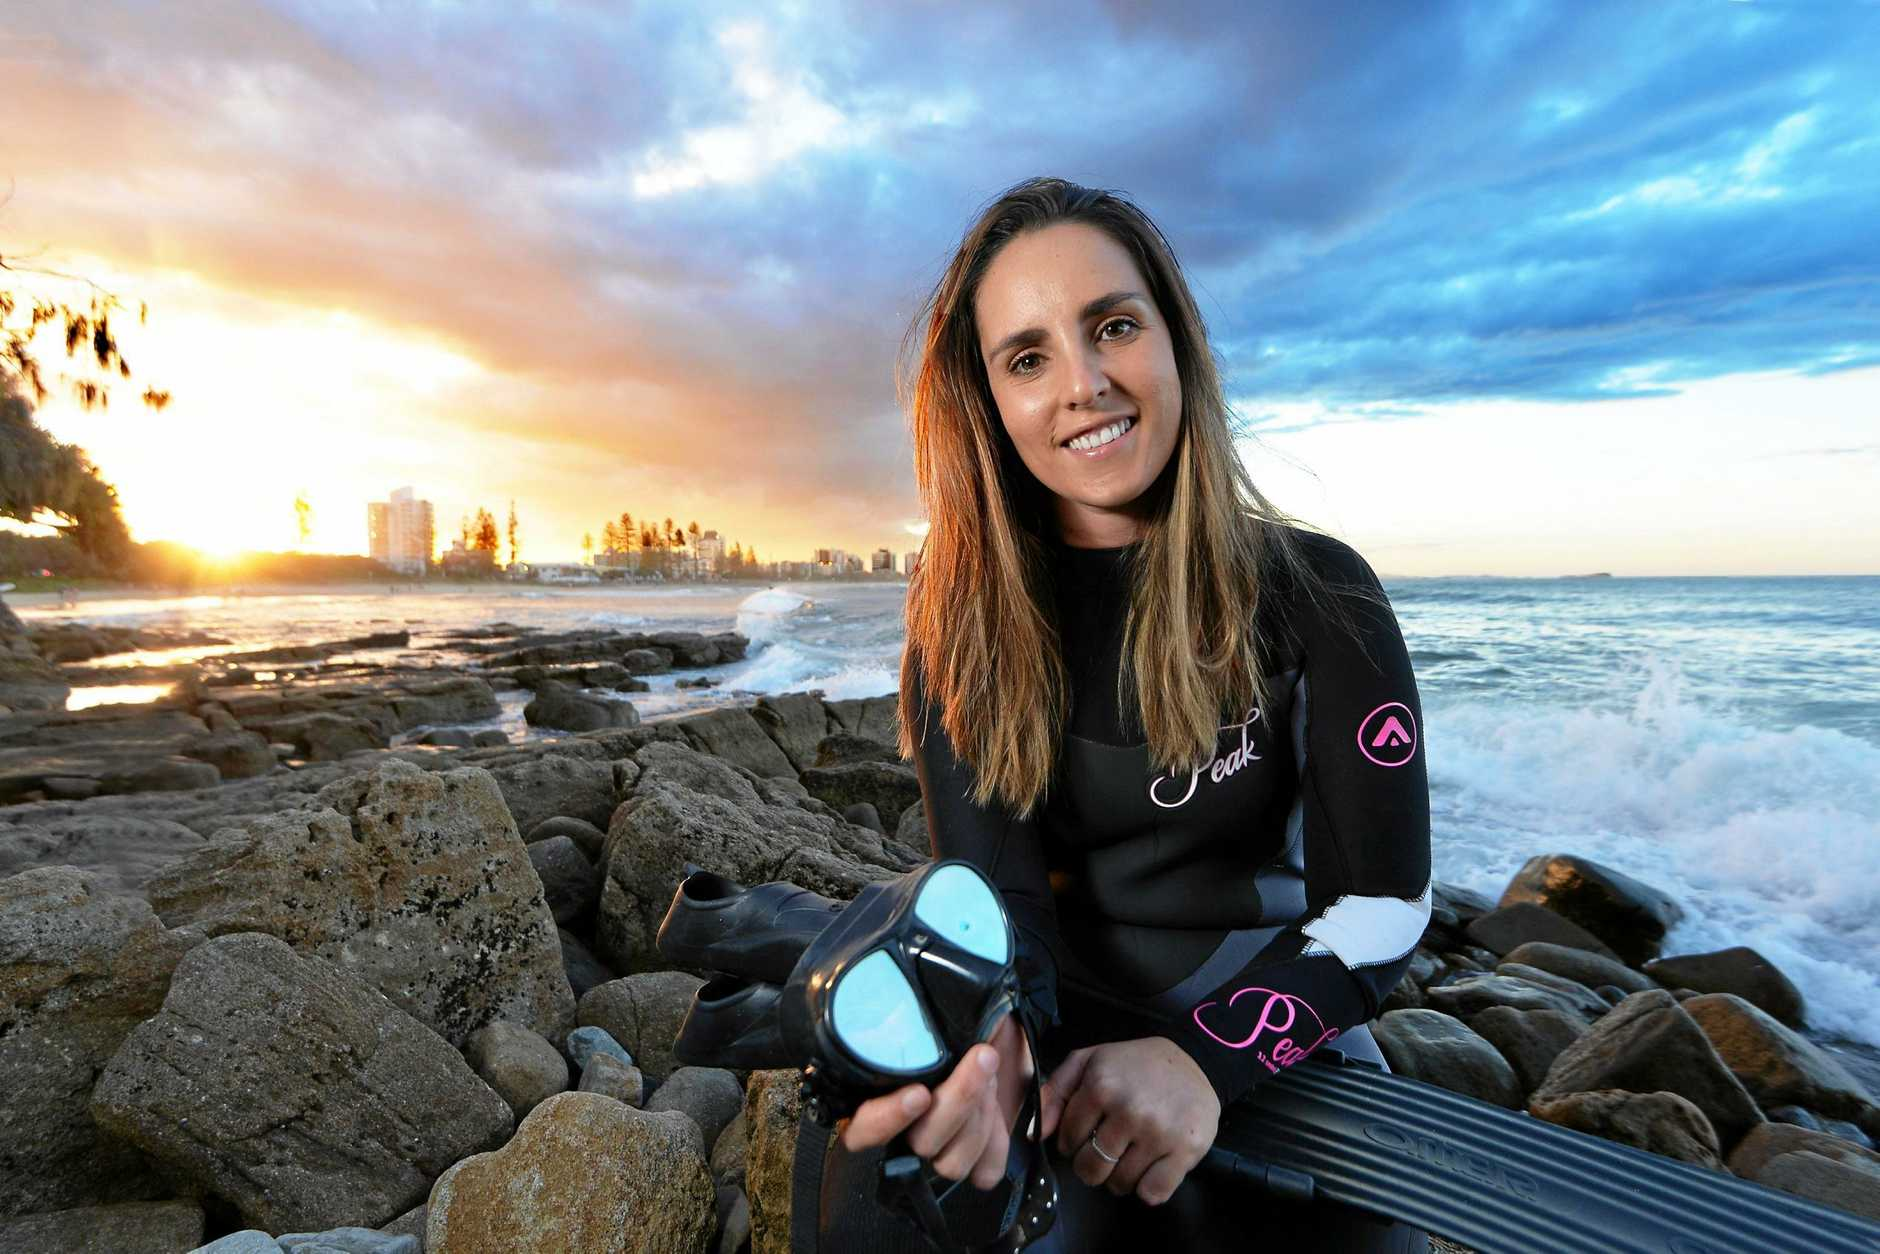 Steph Gabriel runs conservation retreats to Tonga where she takes girls over to swim with whales and other marine life. Uses it as a way to teach people about the impact of plastic and waste on marine life.